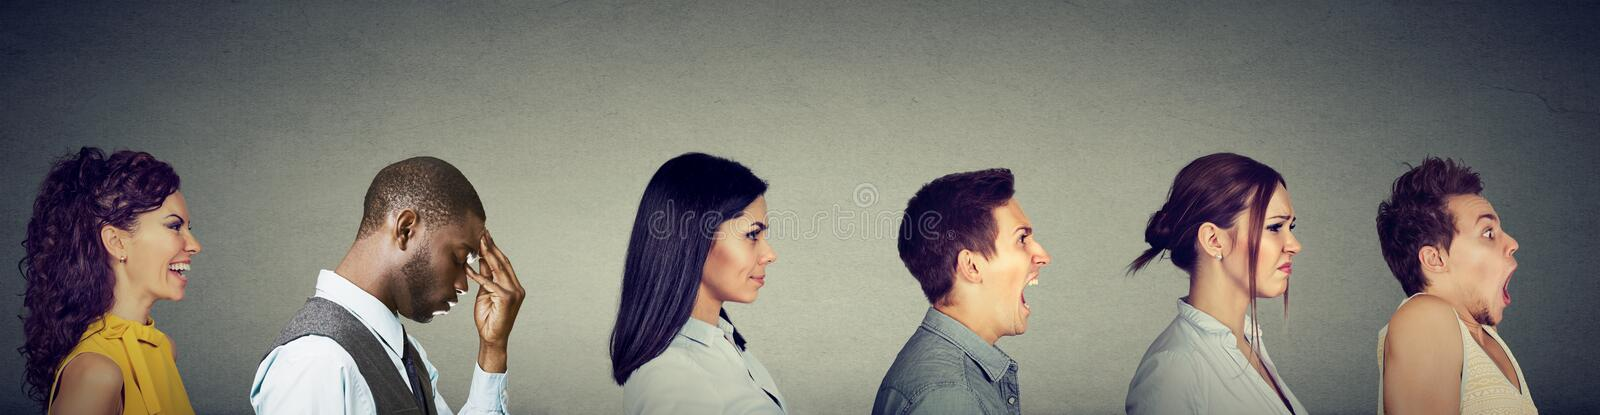 Group of multicultural young people men and women expressing different emotions stock photos